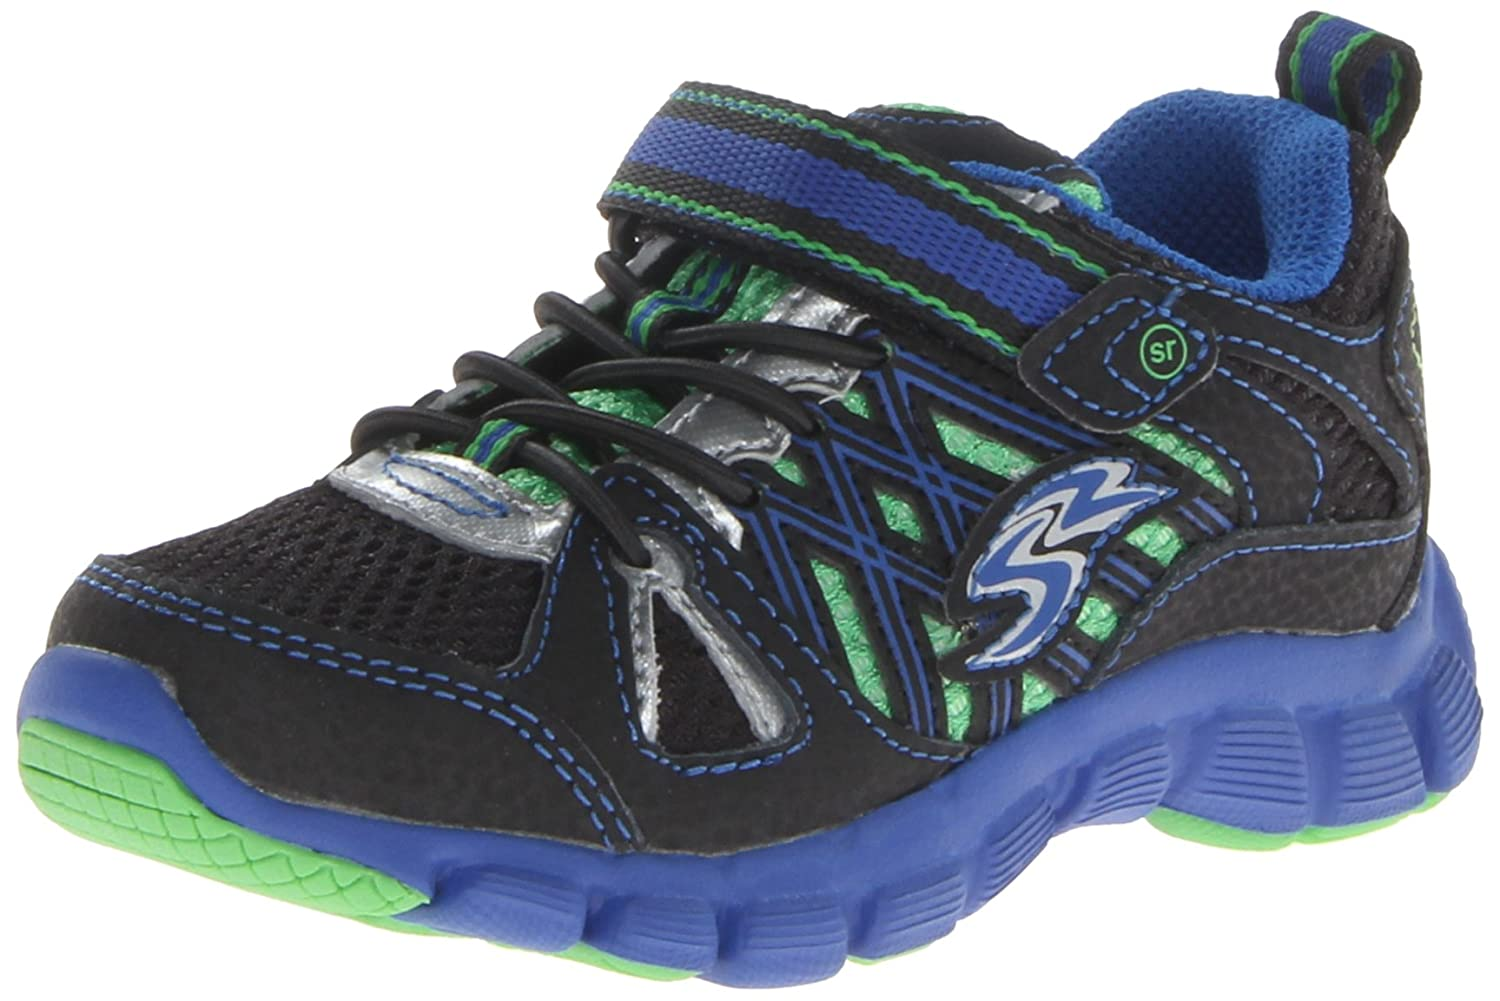 Stride Rite Propel A/C Running Shoe (Toddler/Little Kid) Stride Rite Footwear Boys Propel A/C - K